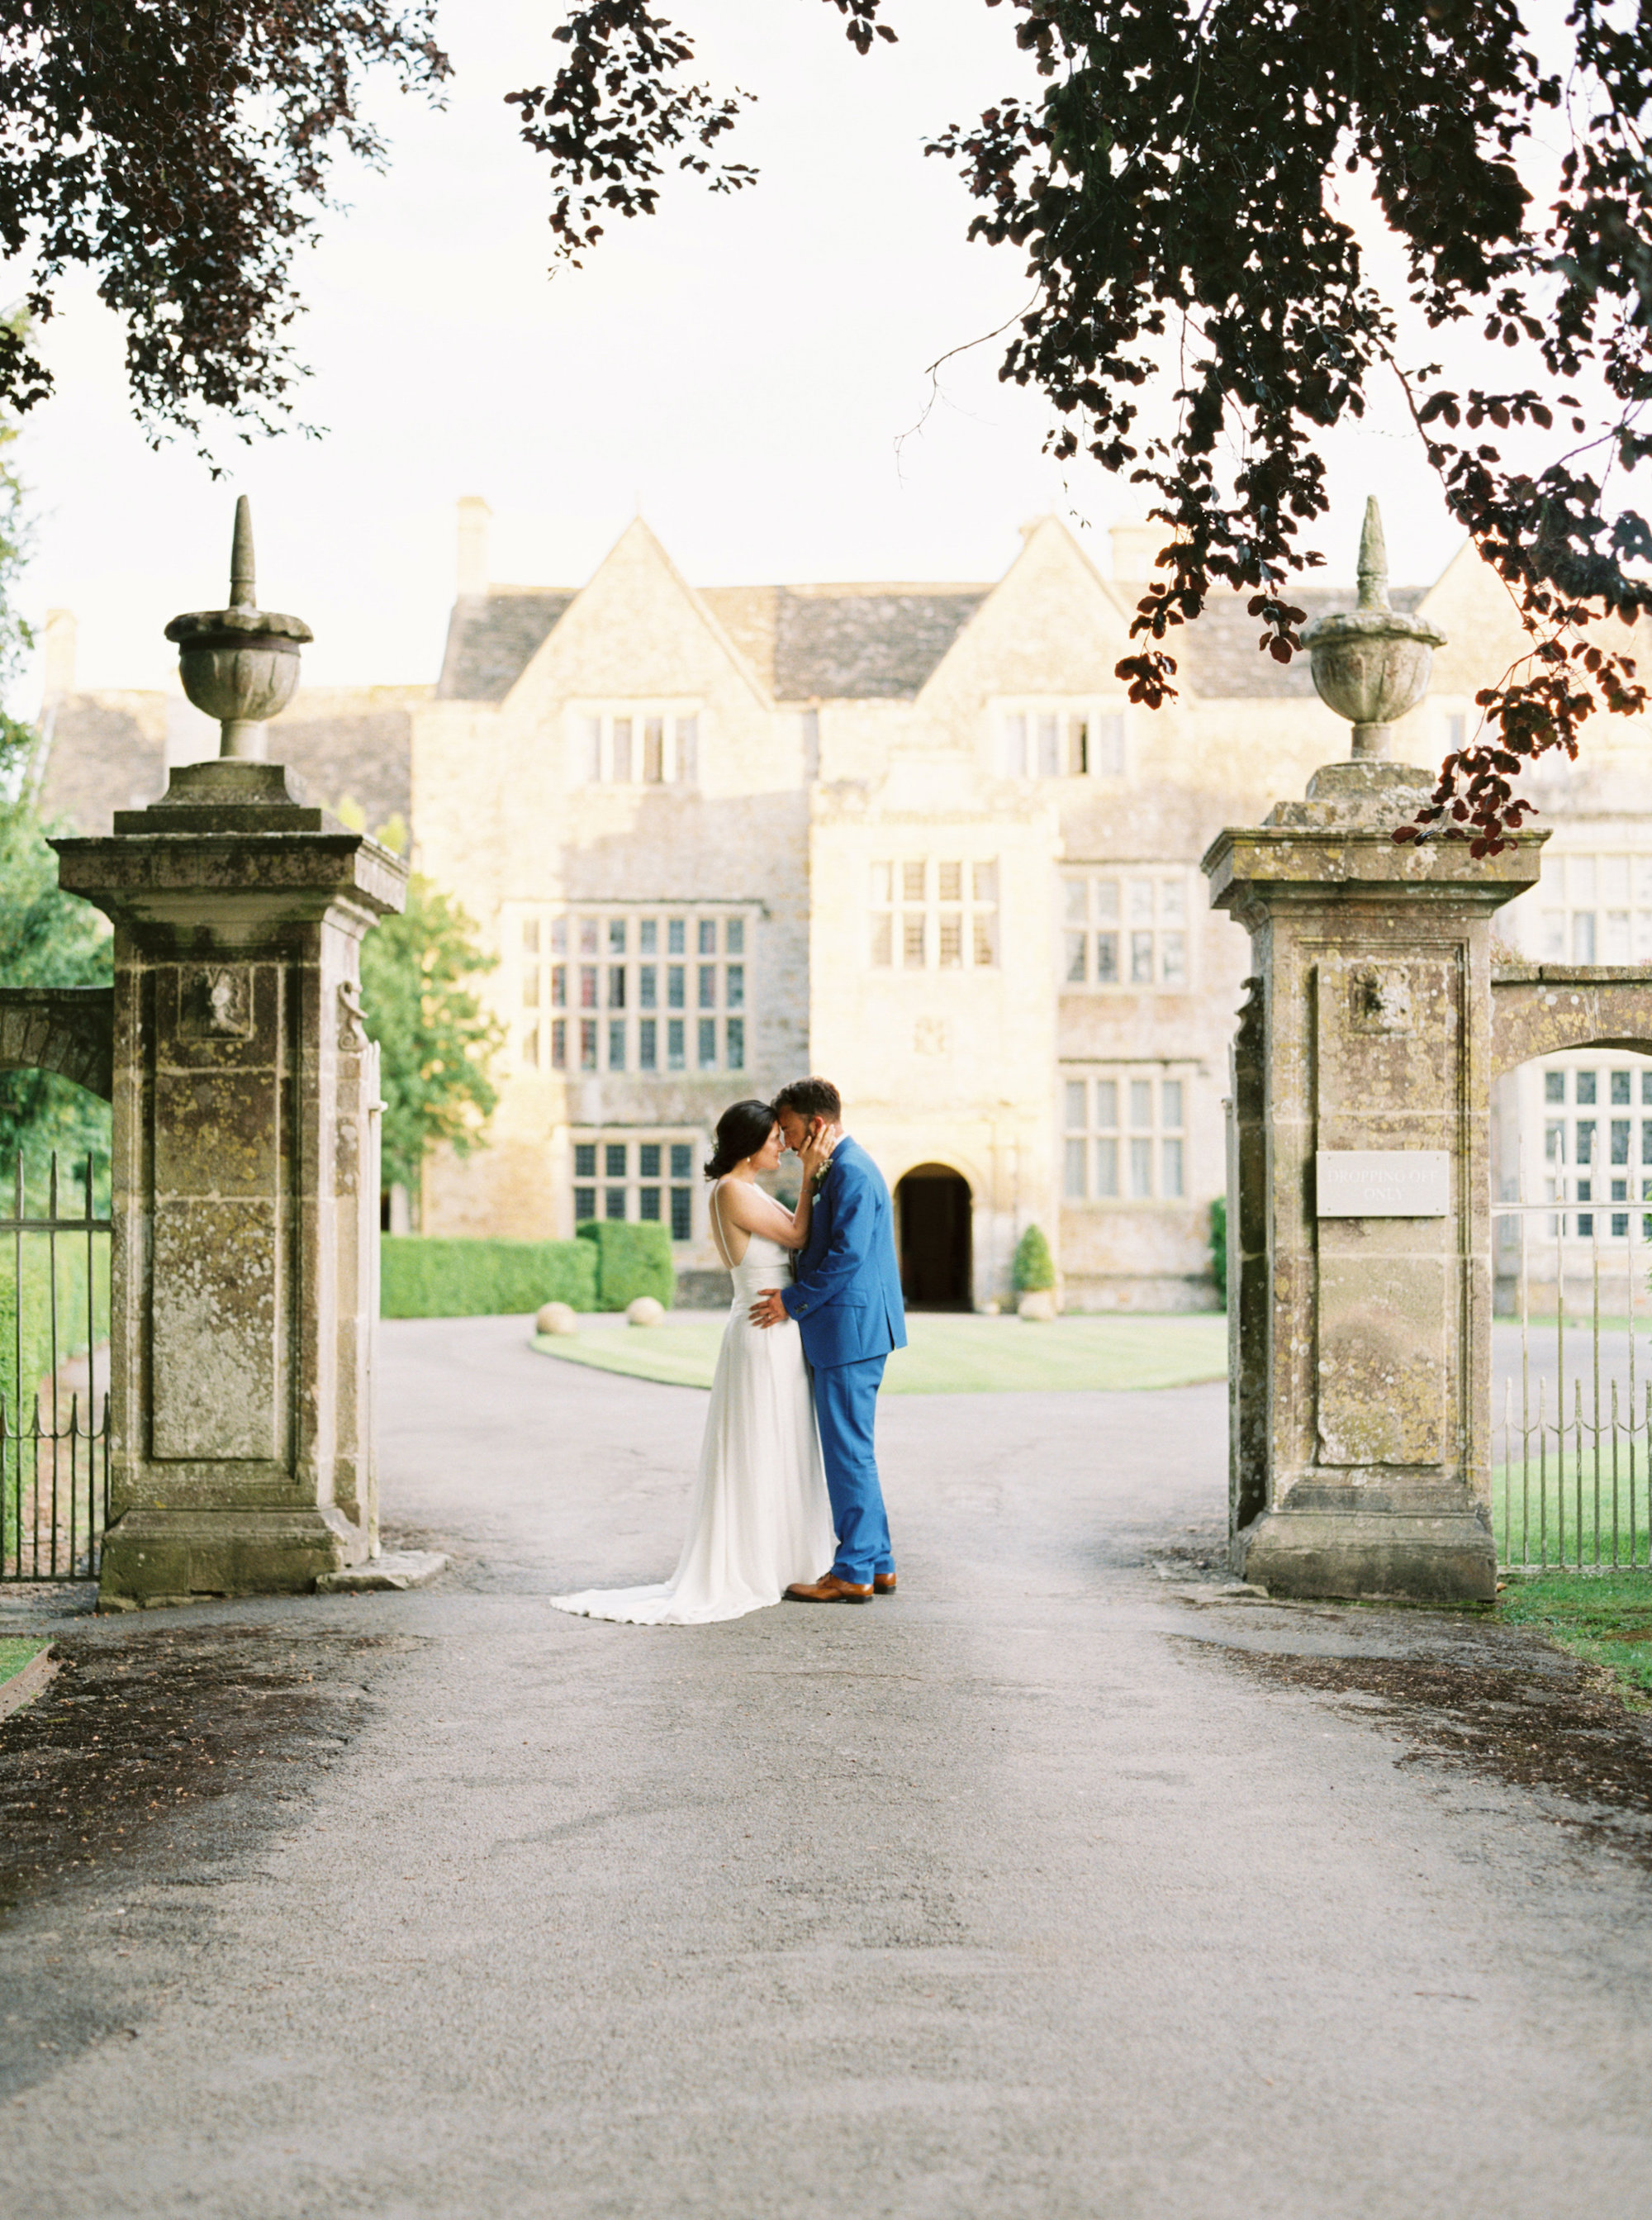 Luxury Wedding Planner UK | Jennifer & Timothy's English Country Manor Wedding | Soft Pink Pale Blue White and Silver Toned Green Neutral Tones American Bride North Cadbury Court | Nicole Colwell Photography  0075.jpg